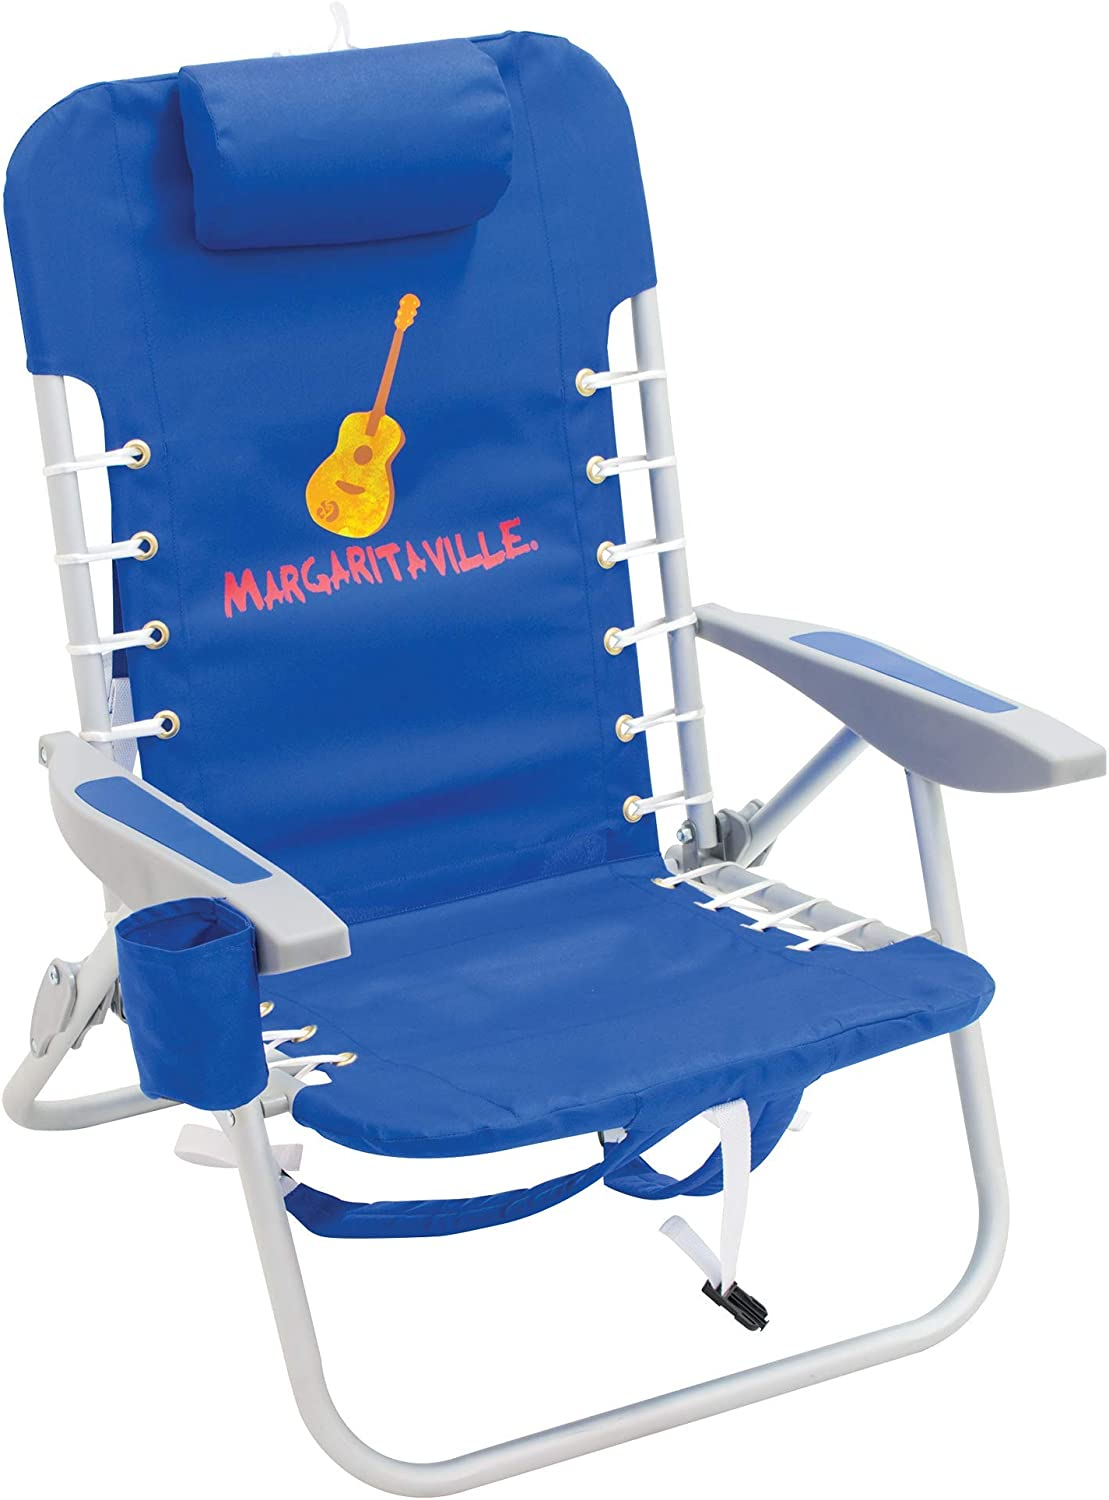 Margaritaville 4-Position Backpack Folding Beach Chair